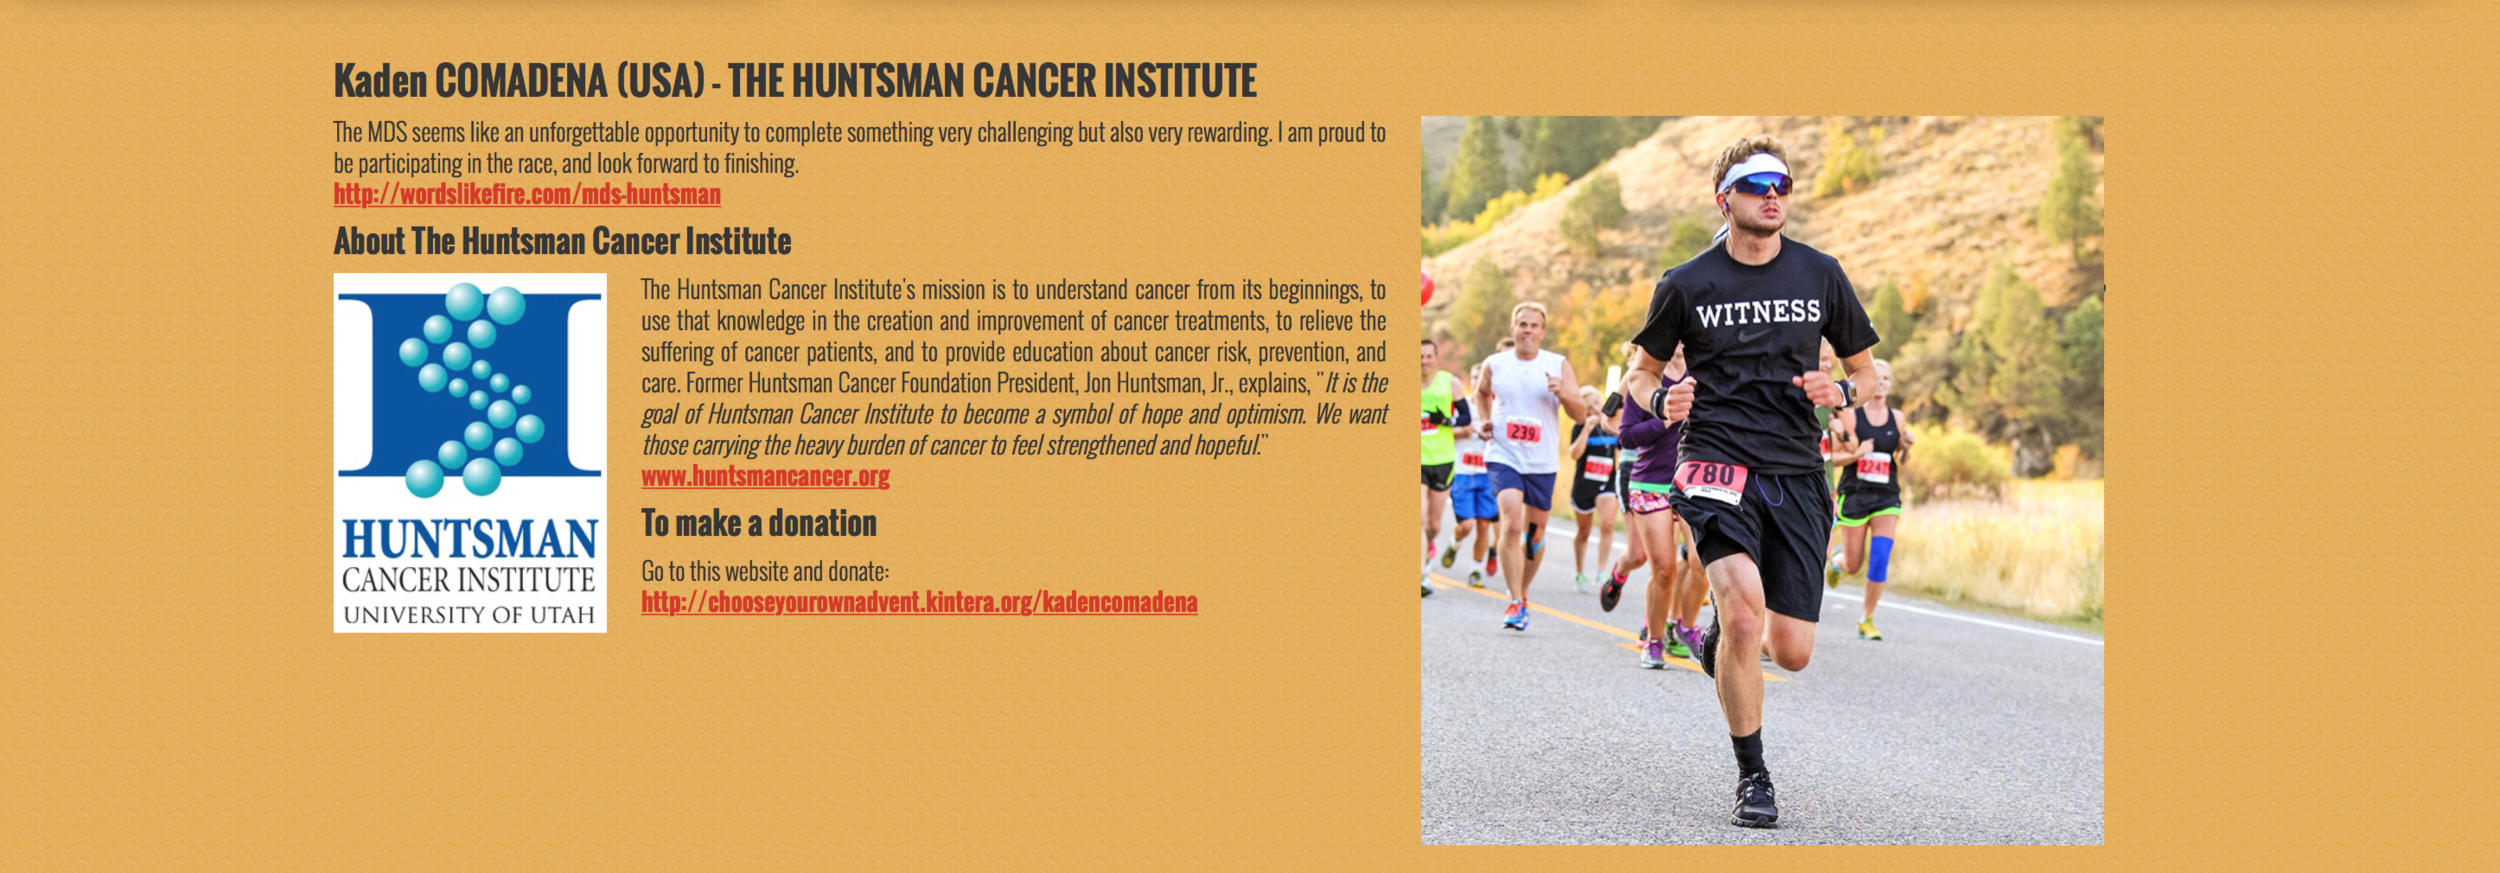 I was proud to represent the  Huntsman Cancer Institute . Consider donating money for cancer research here: https://donate.huntsmancancer.org/give